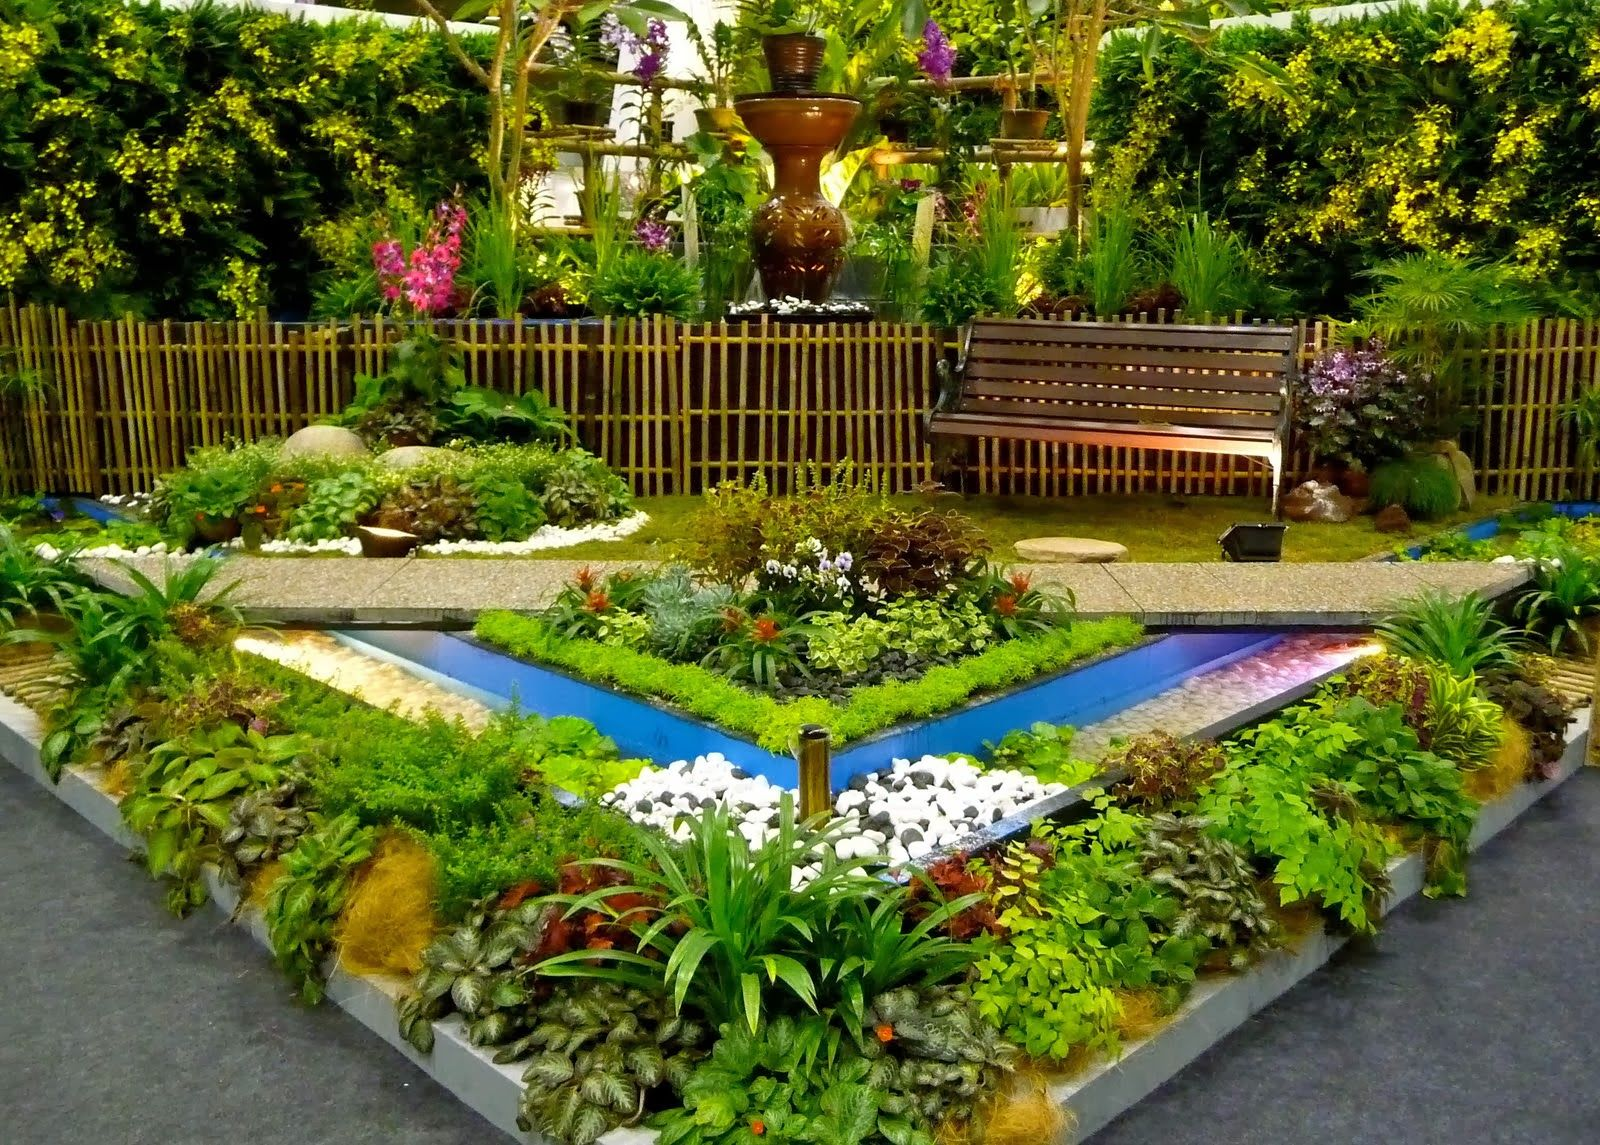 Best landscaping ideas i have ever seen wow design for Back garden landscape designs